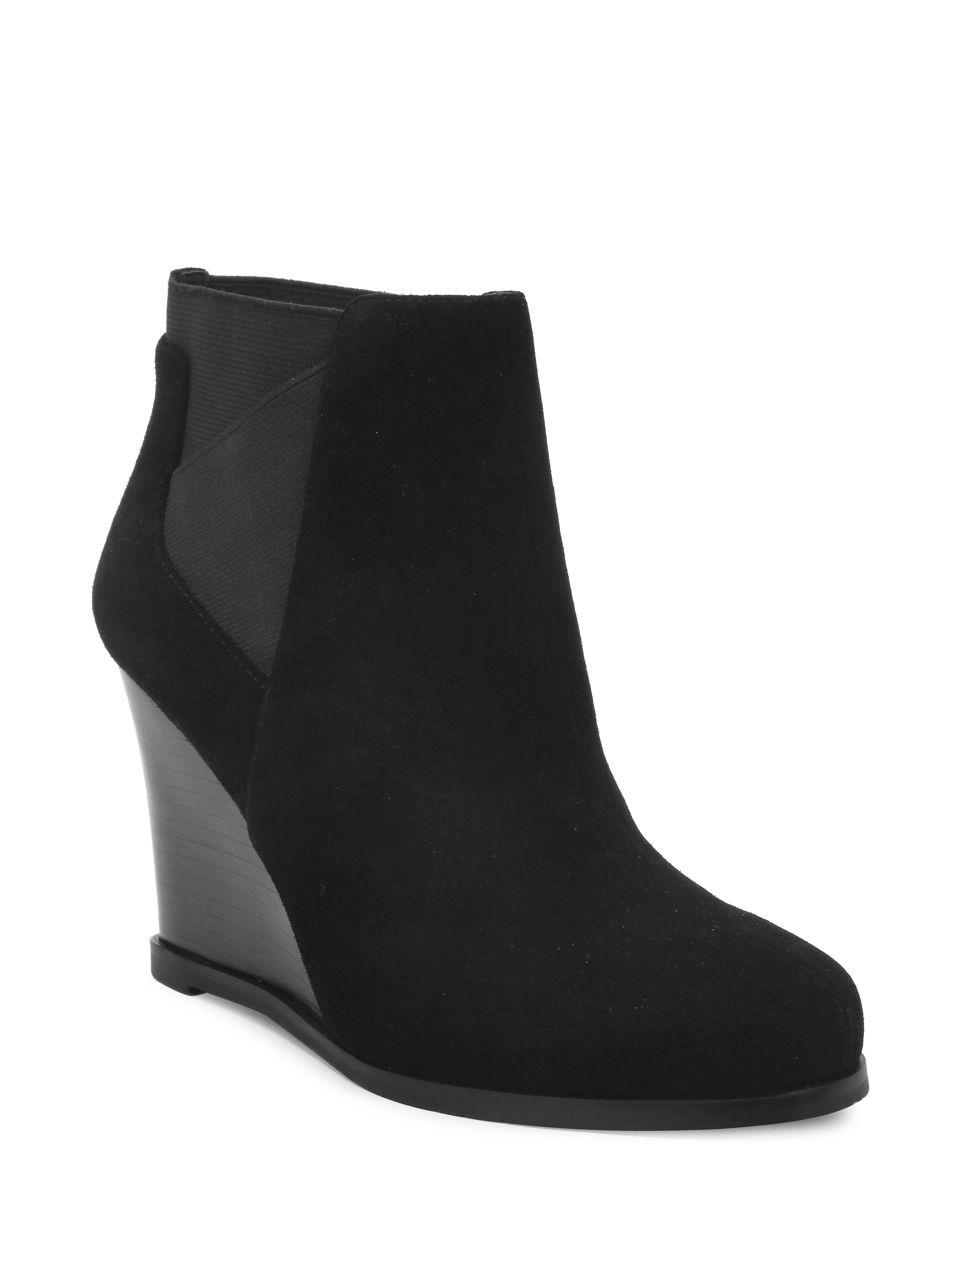 Lyst Tahari Cora Suede Wedge Ankle Boots In Black